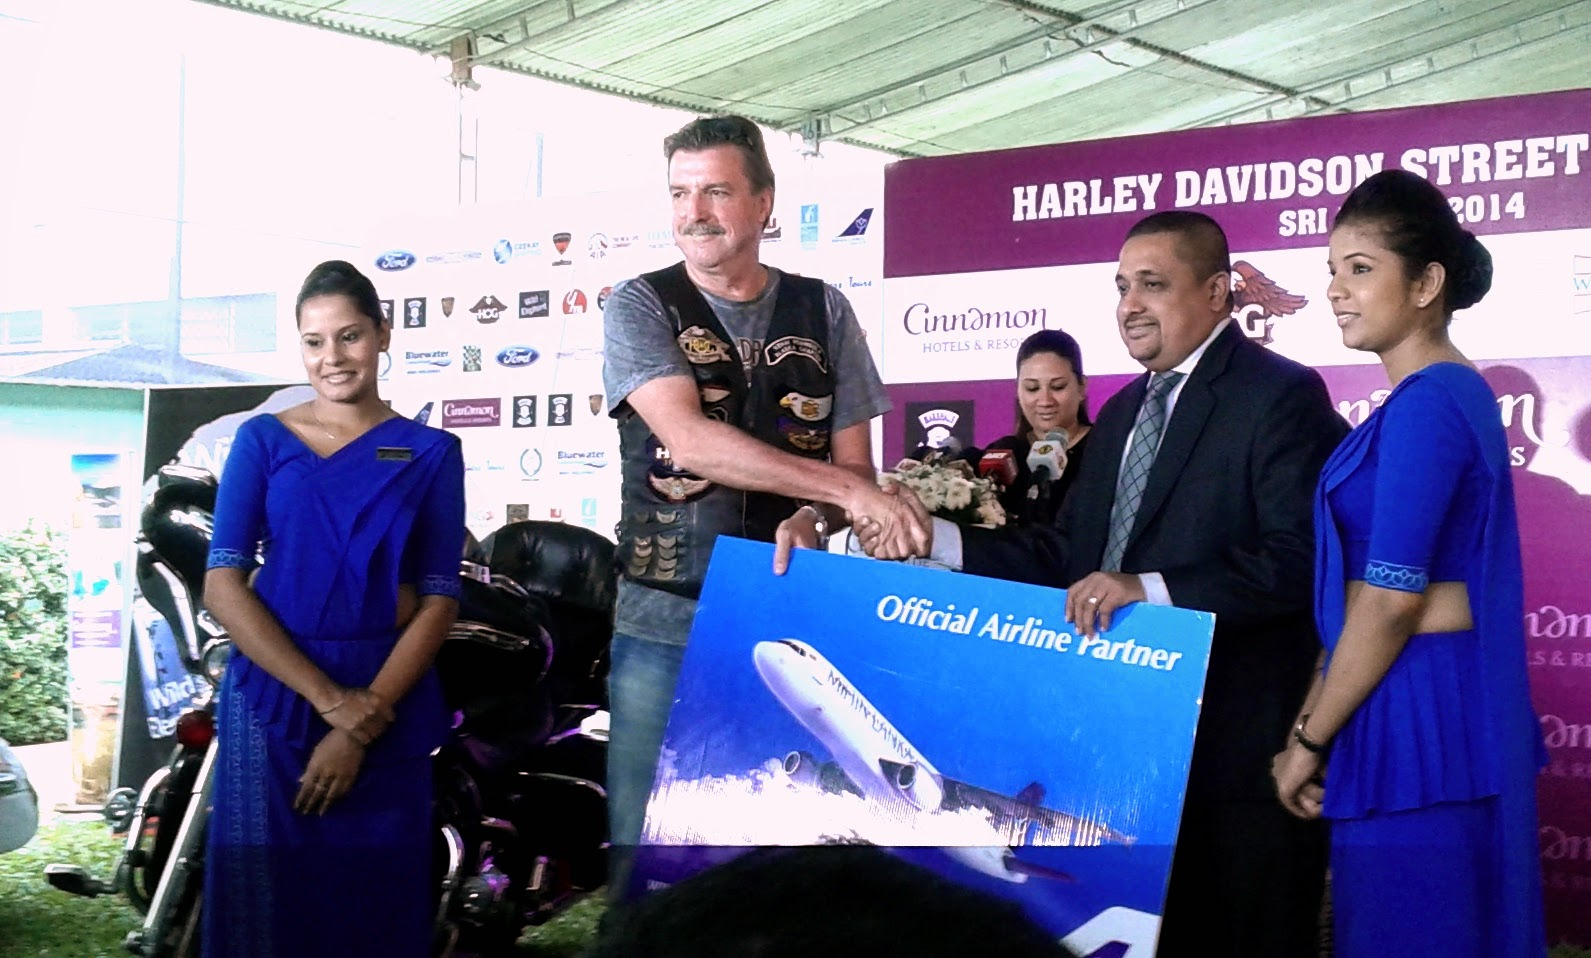 Asanka Fernando, Head of Sales, Mihin Lanka hands over Sponsorship Cheque to a Harley Davidson team member at a press conference